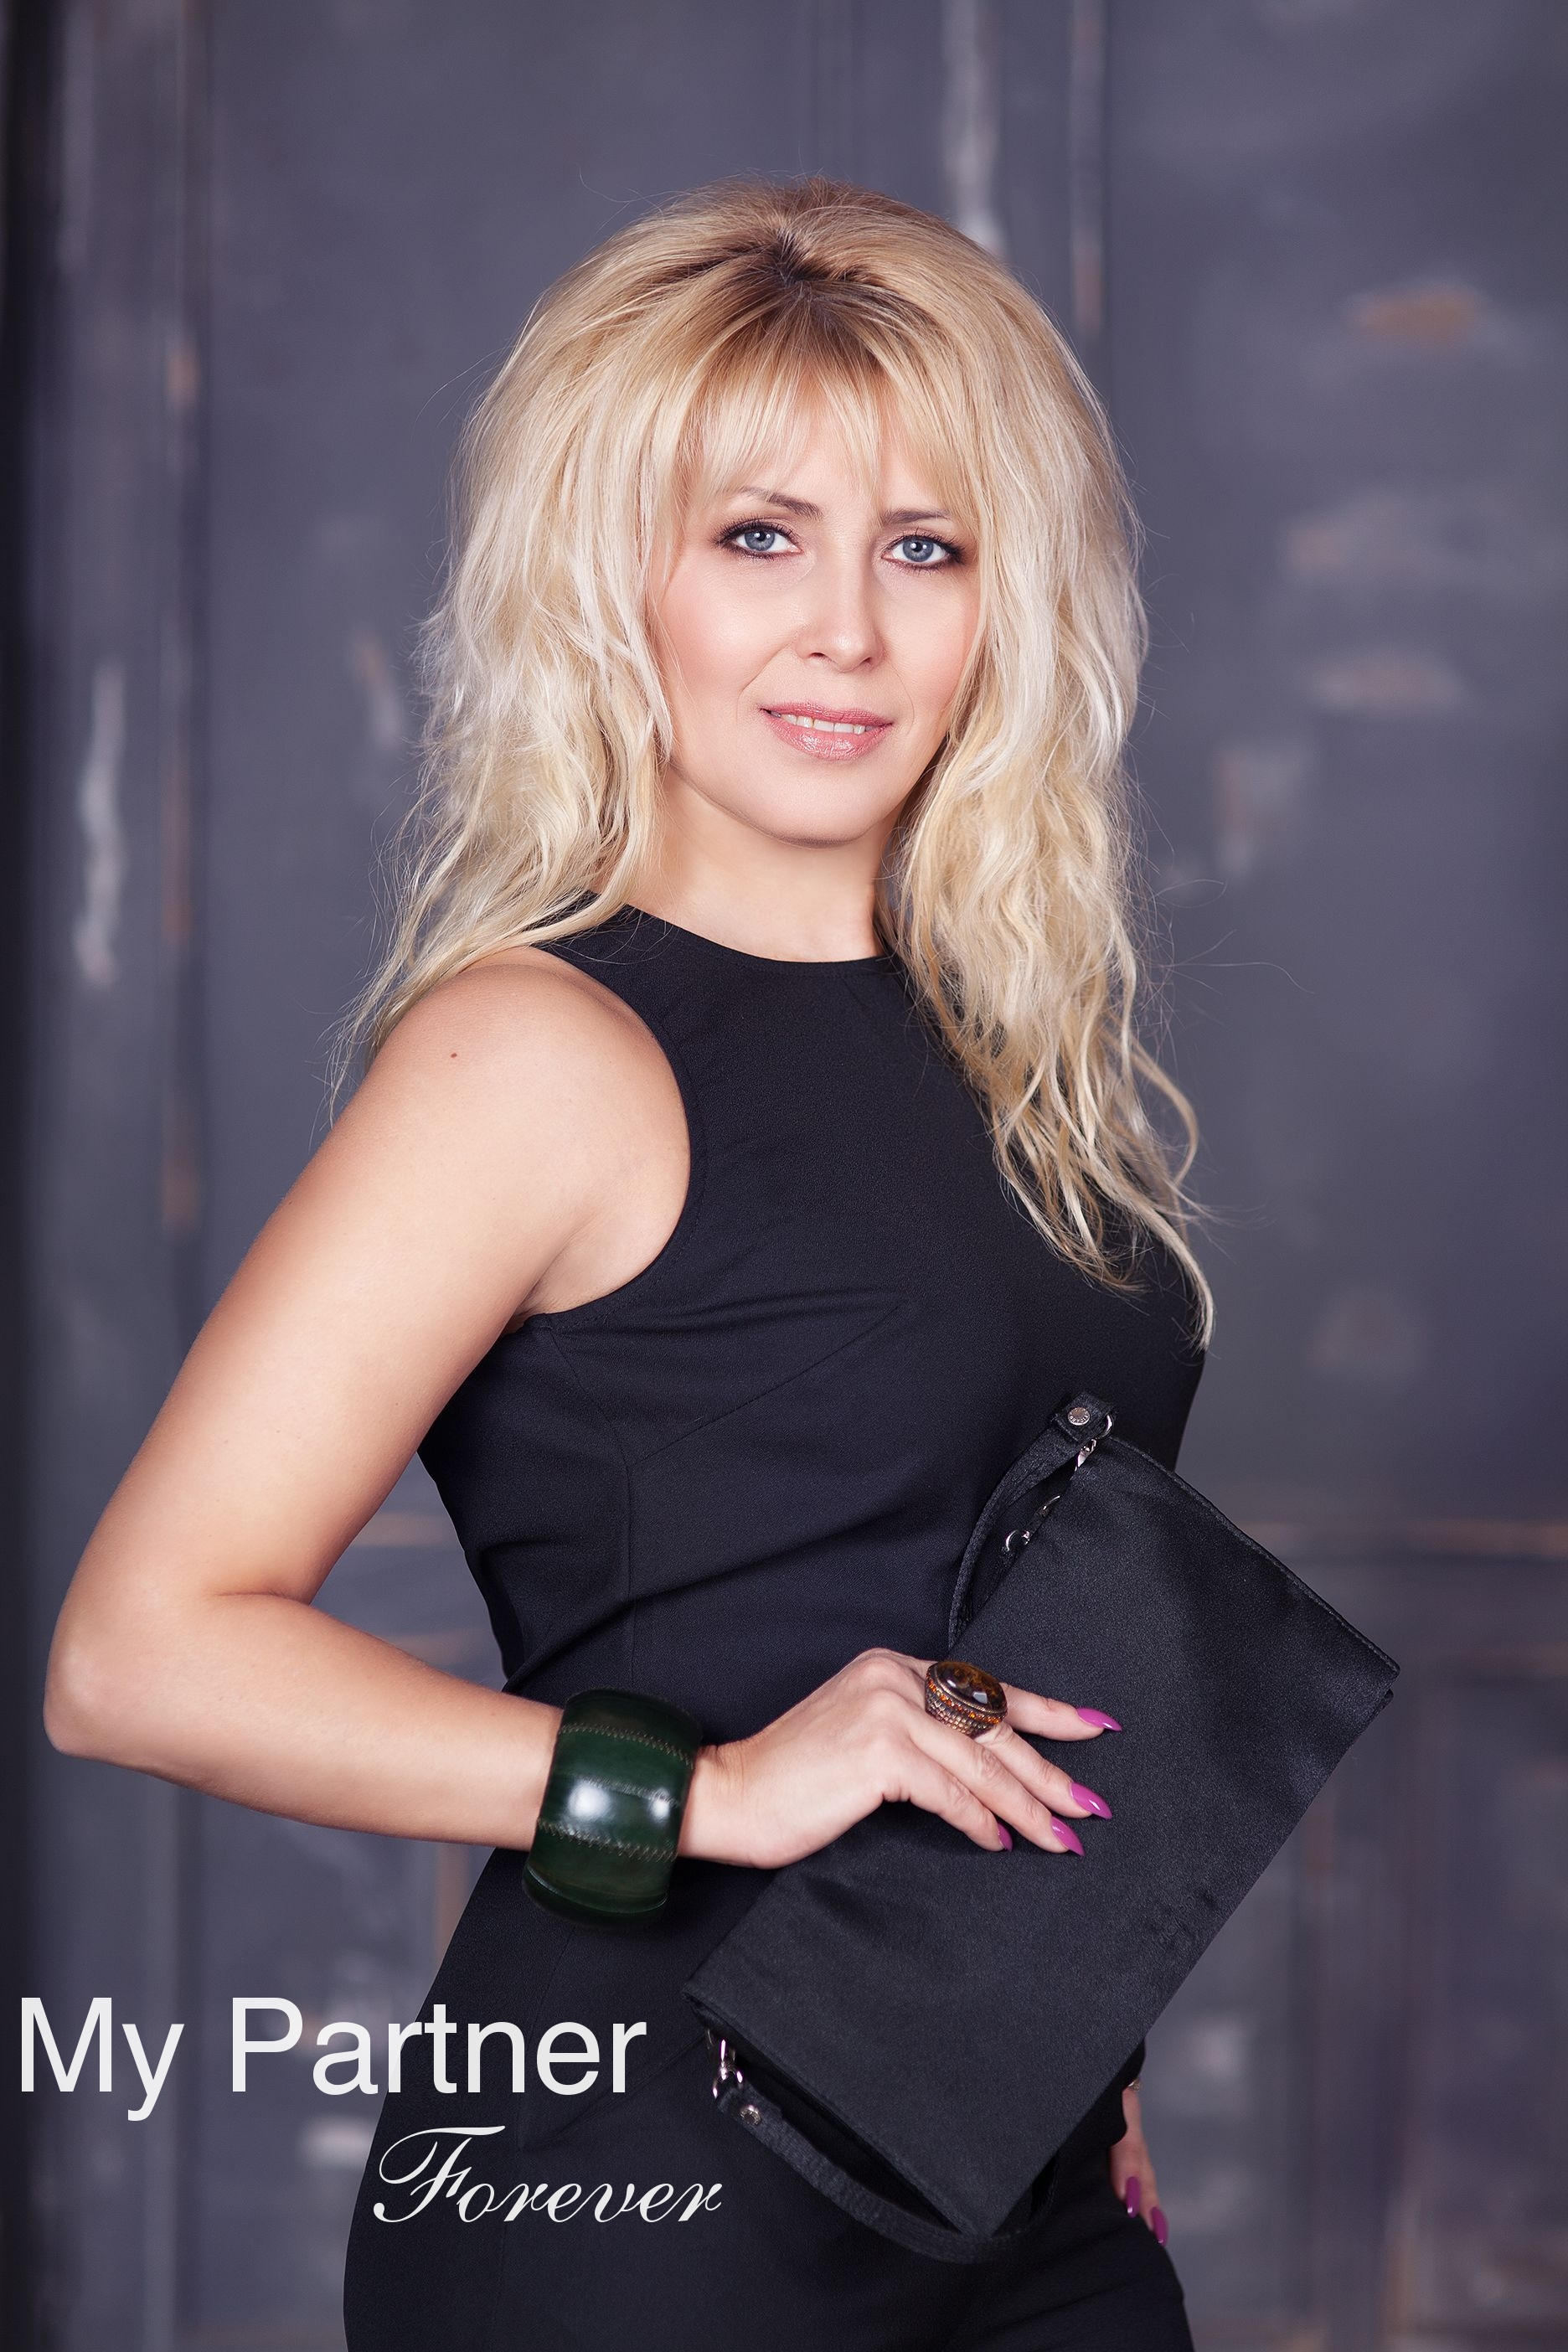 Datingsite to Meet Stunning Ukrainian Woman Nataliya from Zaporozhye, Ukraine